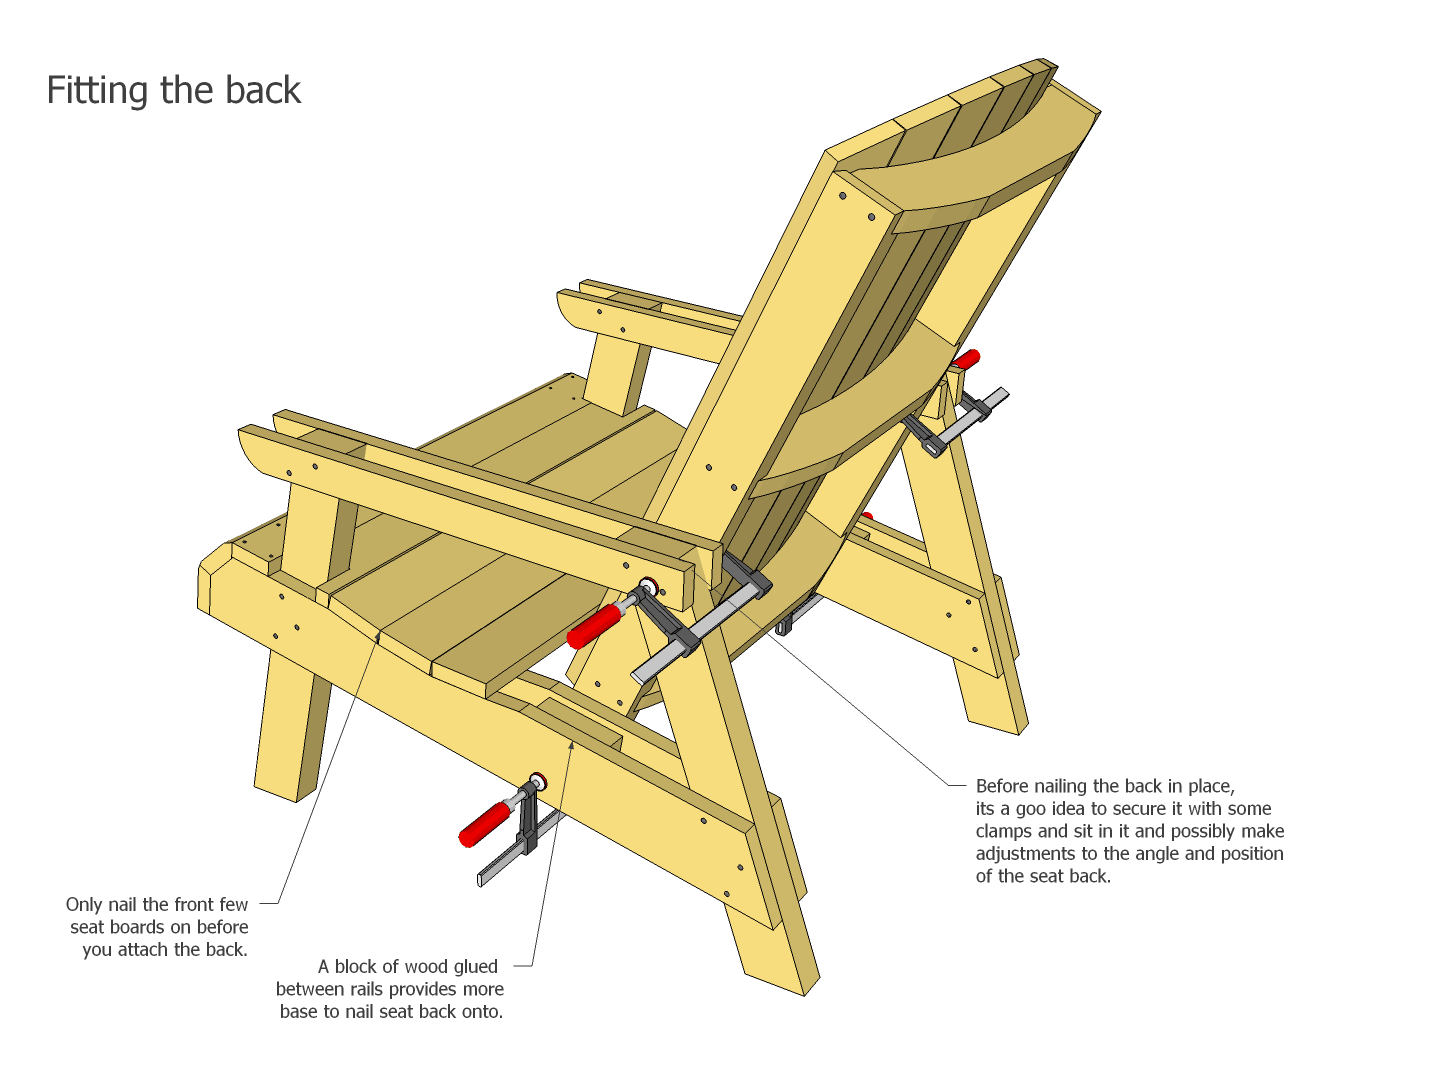 ... lawn chair .You will need the free Google SketchUp to open the